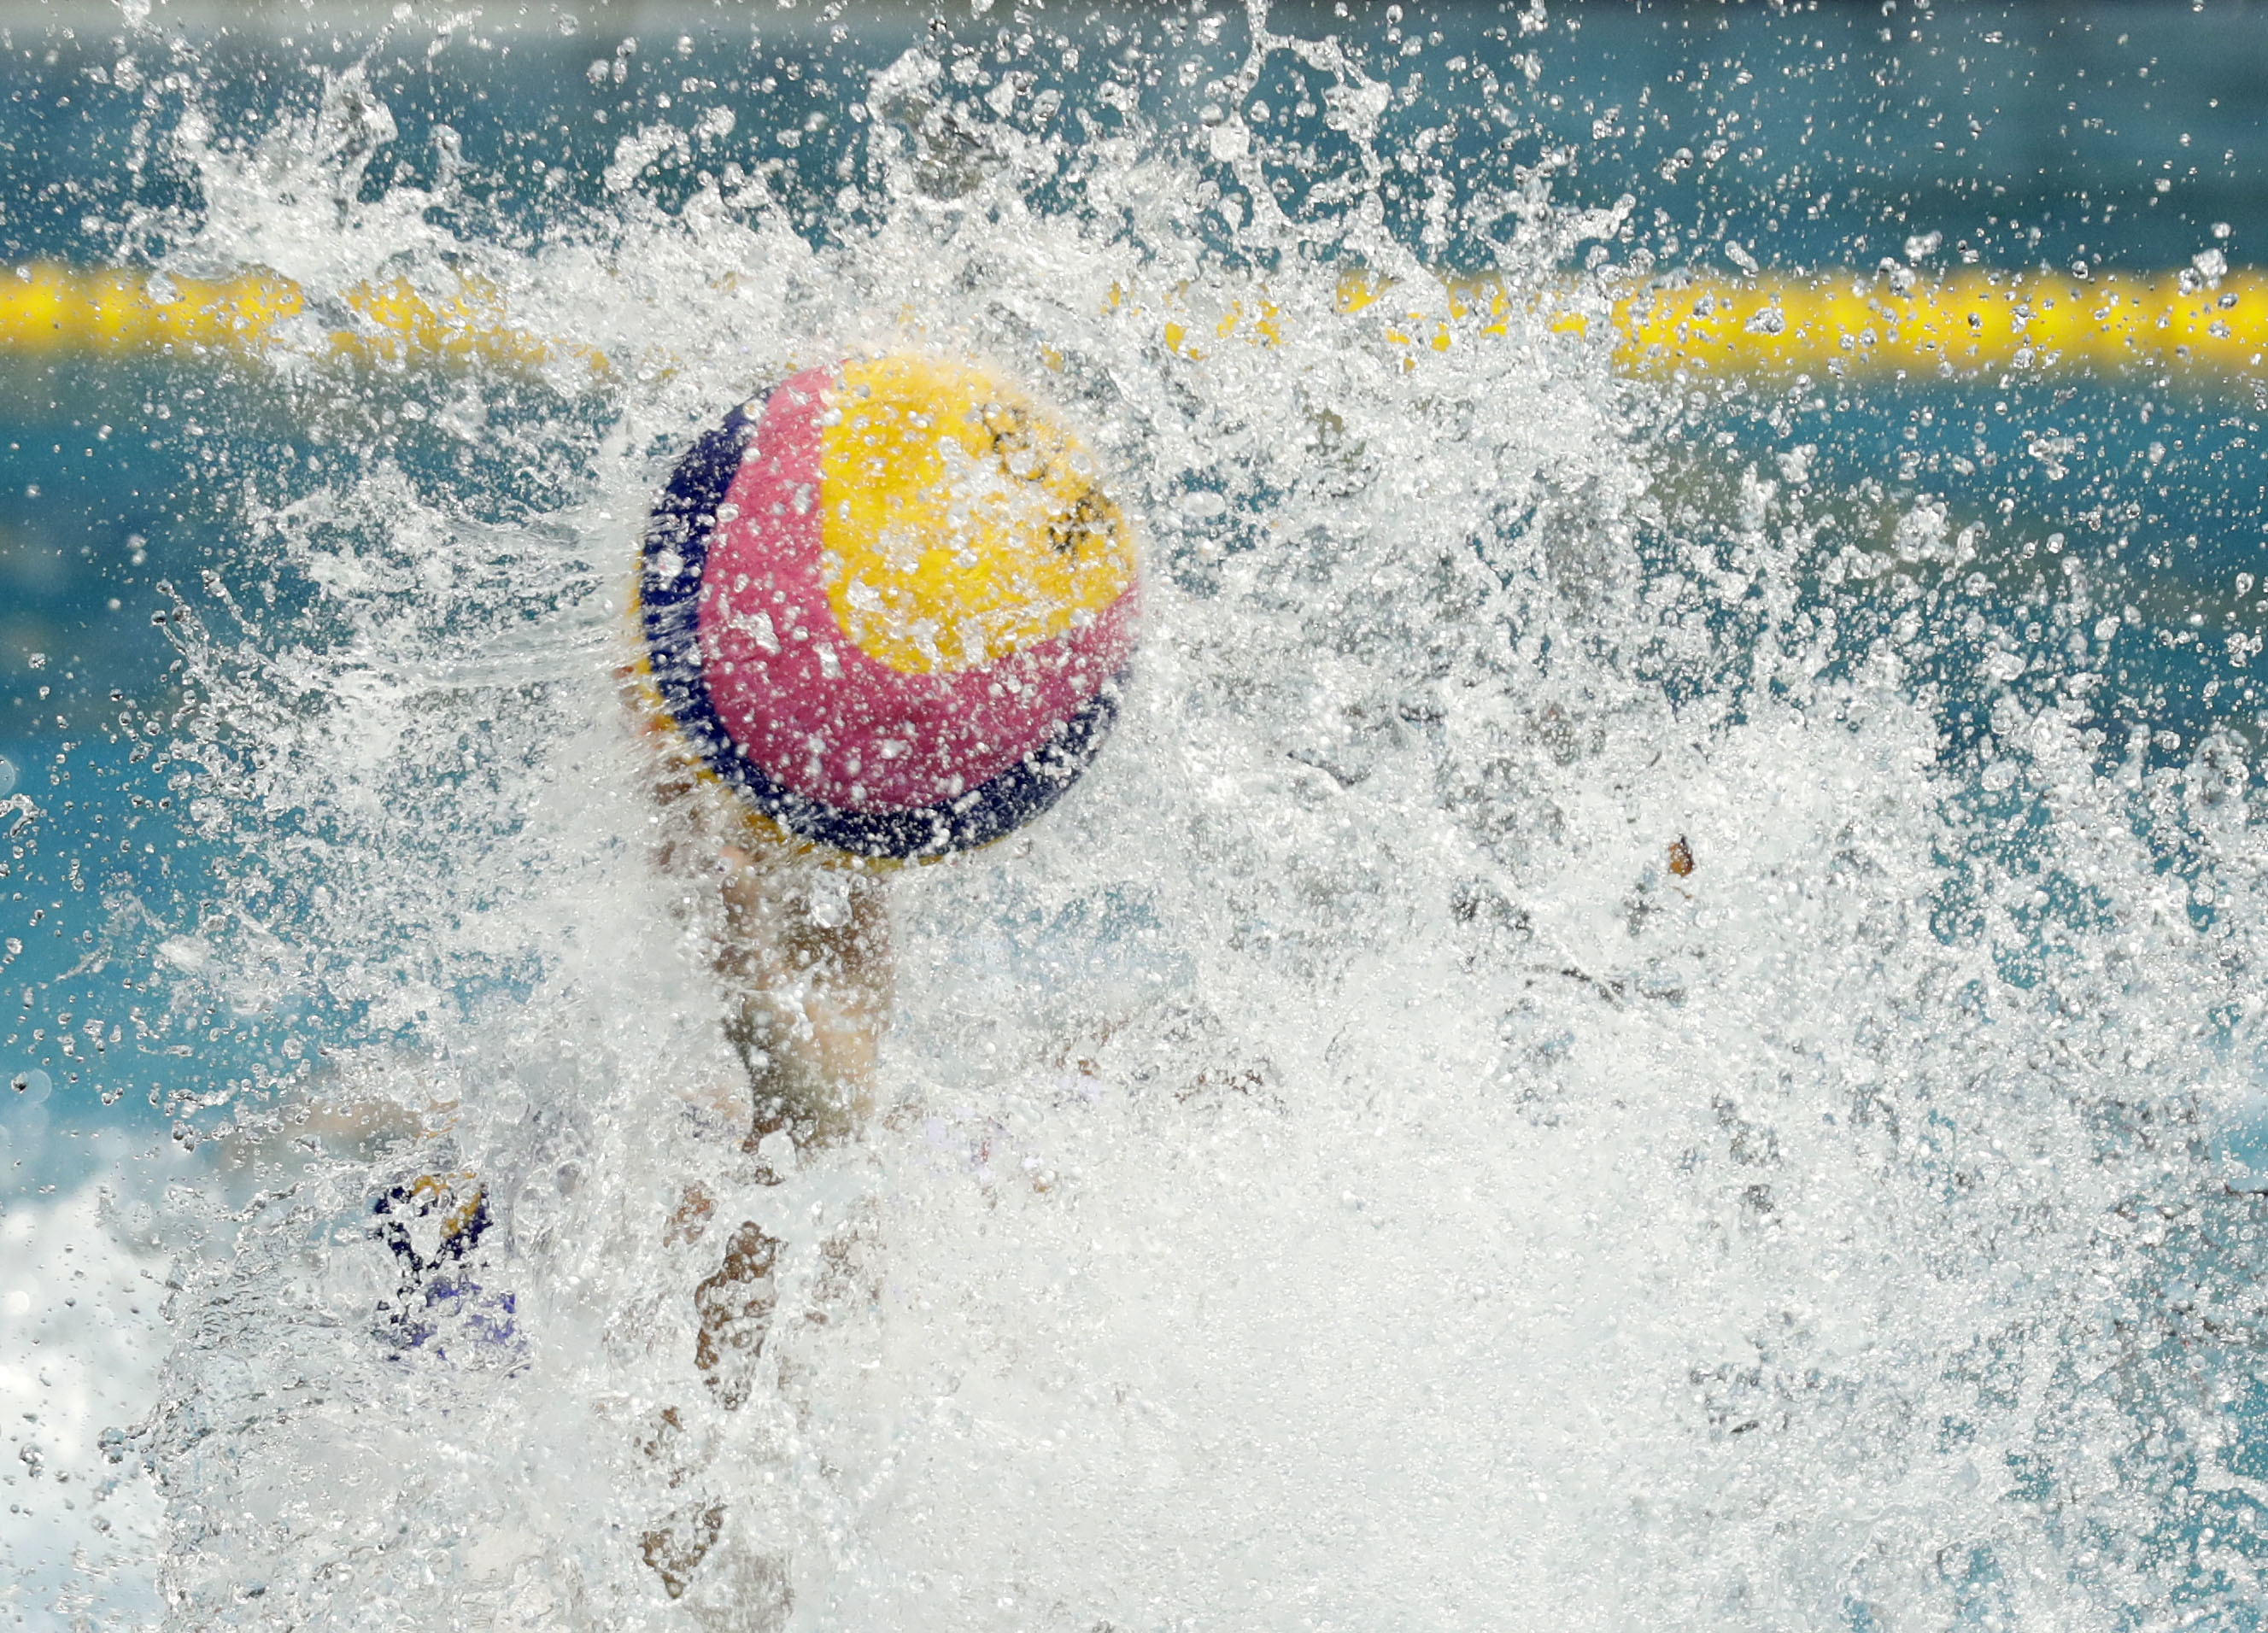 Montenegro's Aleksandar Ivovic shoots against France during men's water polo preliminary round match at the 2016 Summer Olympics in Rio de Janeiro, Brazil, Saturday, Aug. 6, 2016. (AP Photo/Sergei Grits)